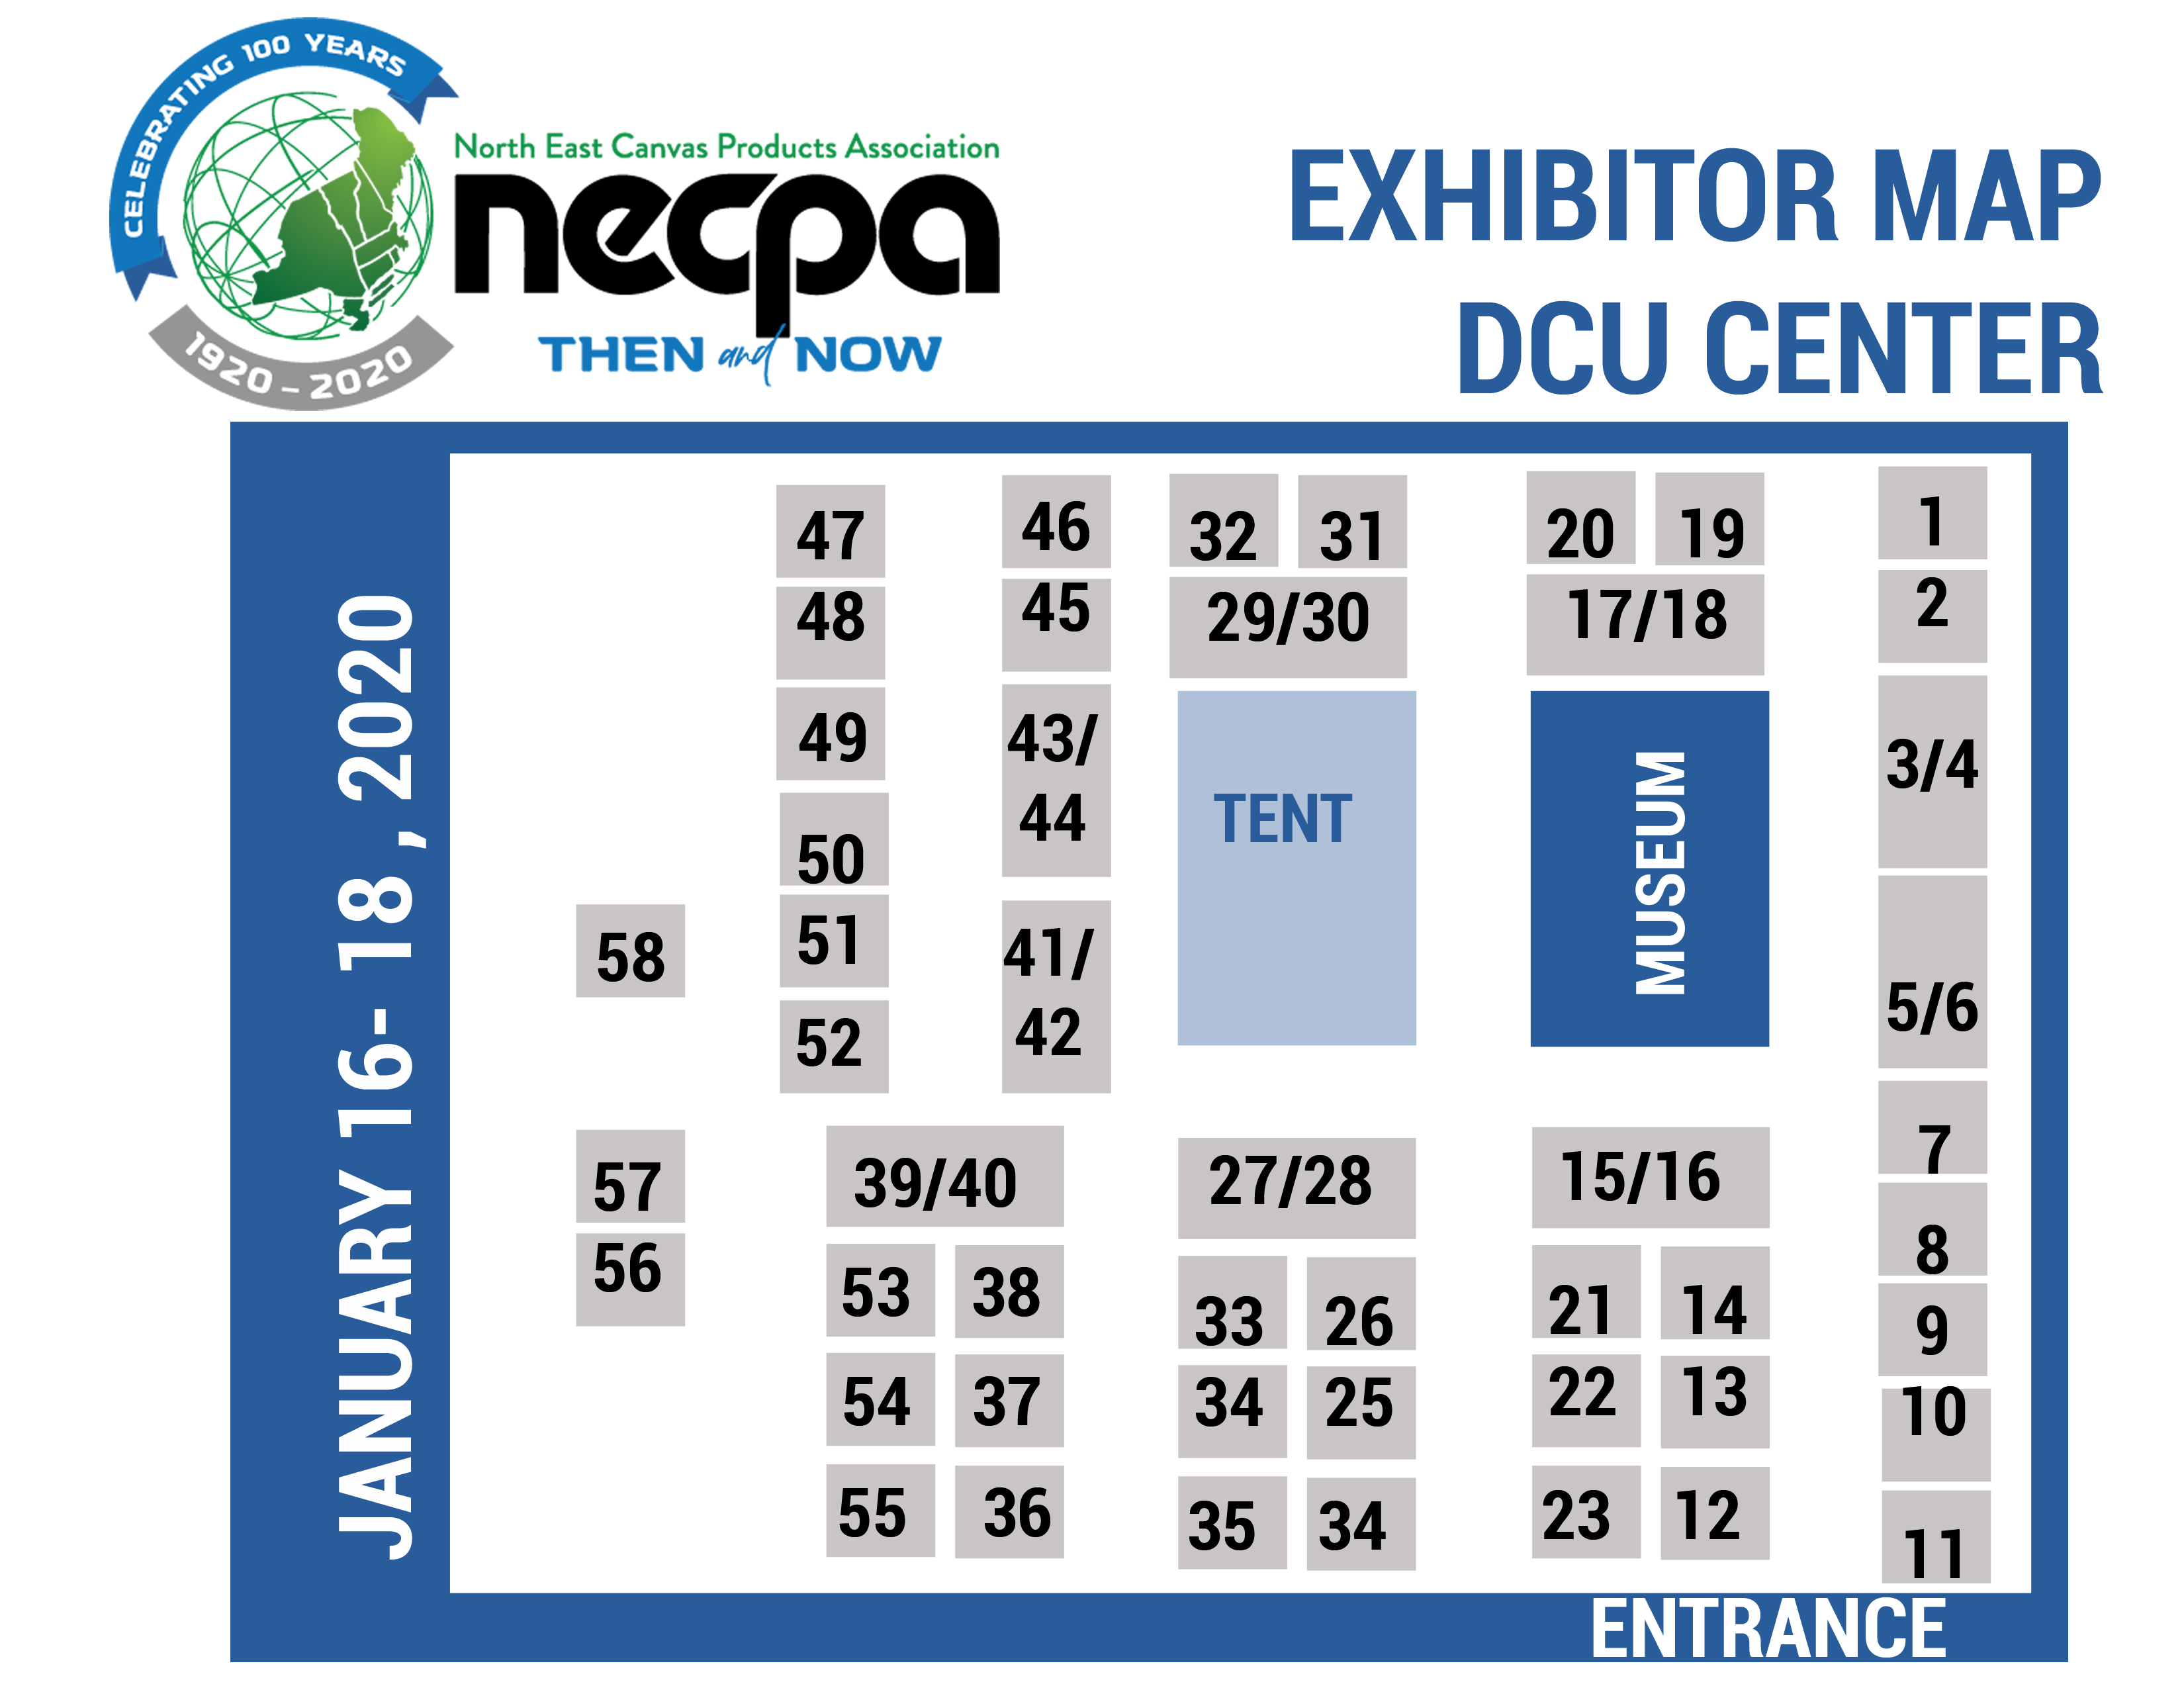 NECPA Expo 2020 for Exhibitors Registration, Thu, Jan 16 ... on resch center map, mandalay bay events center map, wells fargo center map, target center map, lakeland center map, valley view casino center map, maverik center map, edaville usa map, reno events center map, wolstein center map, at&t center map, smoothie king center map, la crosse center map, dow event center map, convention center map, bb&t center map, times union center map, bridgeport arena map, bok center map, el paso county coliseum map,